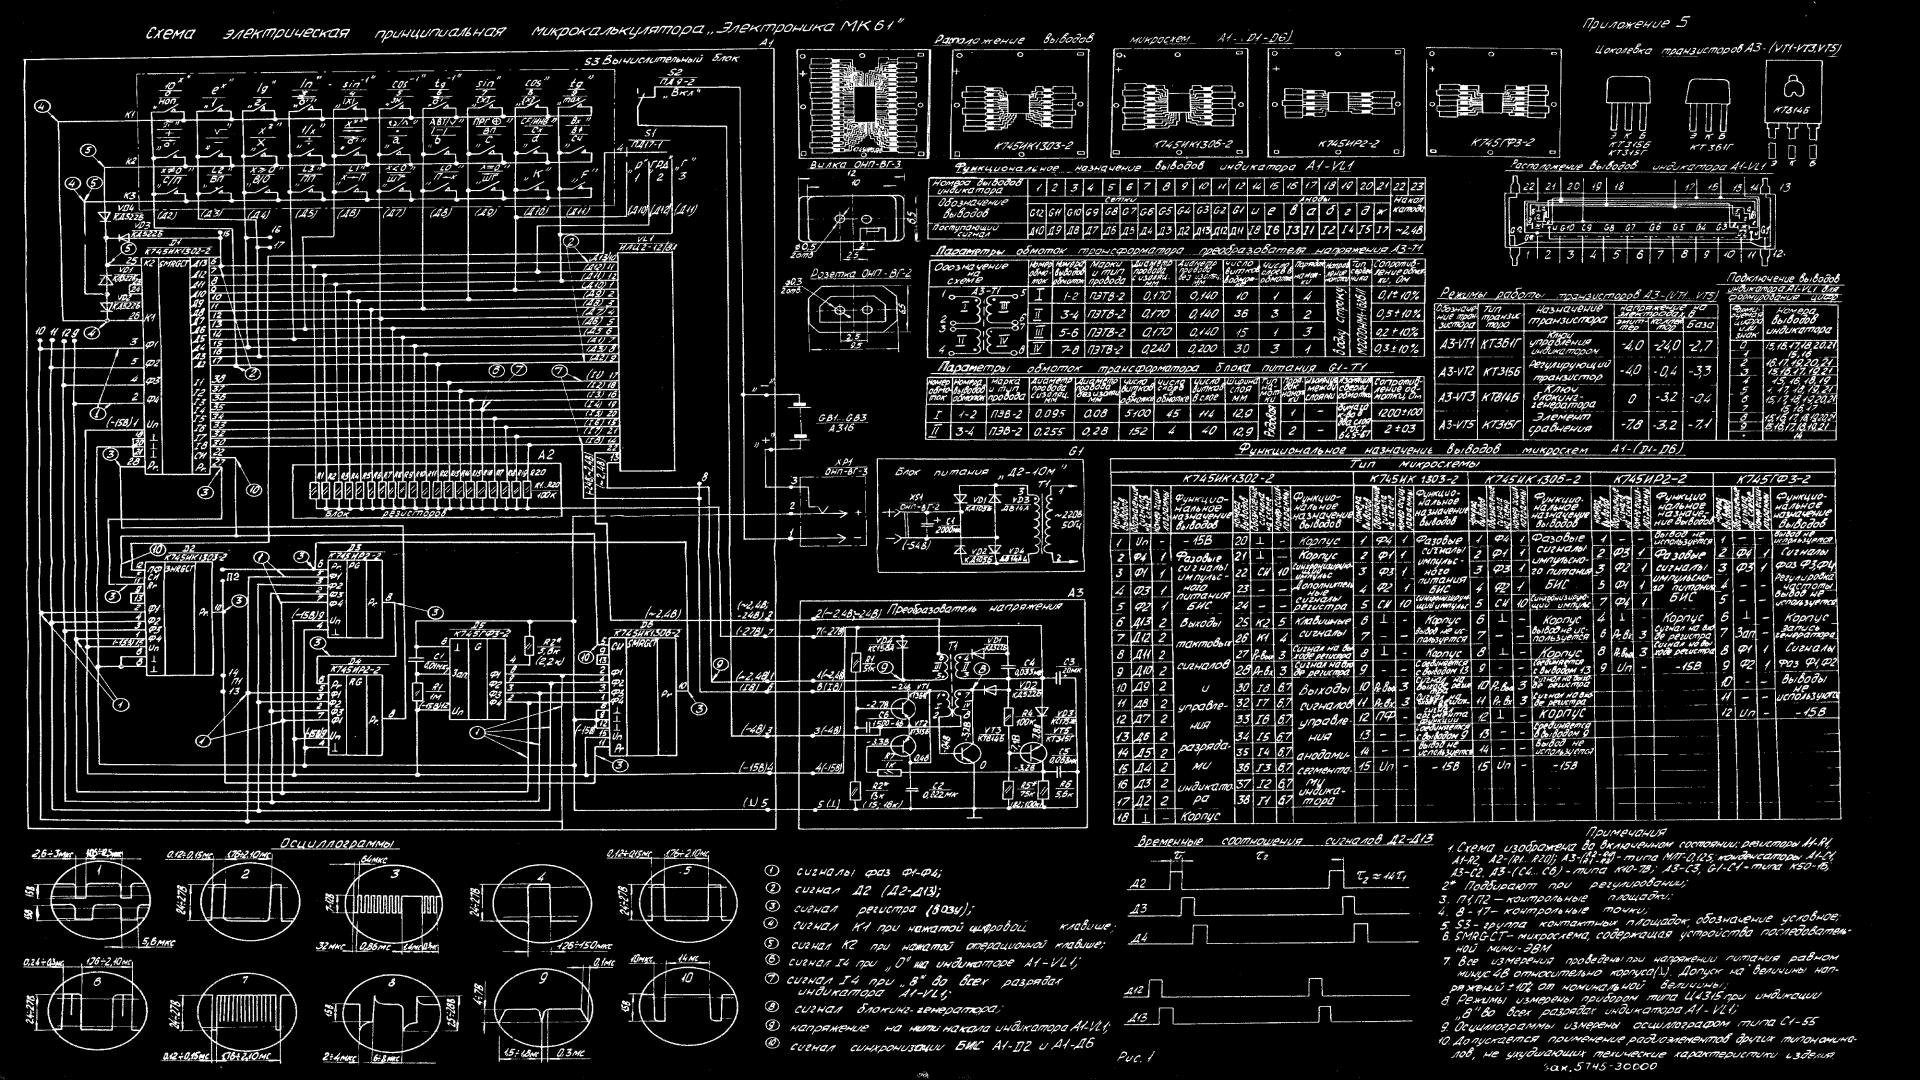 Schematic Of A Russian Mk 61 Calculator Hd Wallpaper